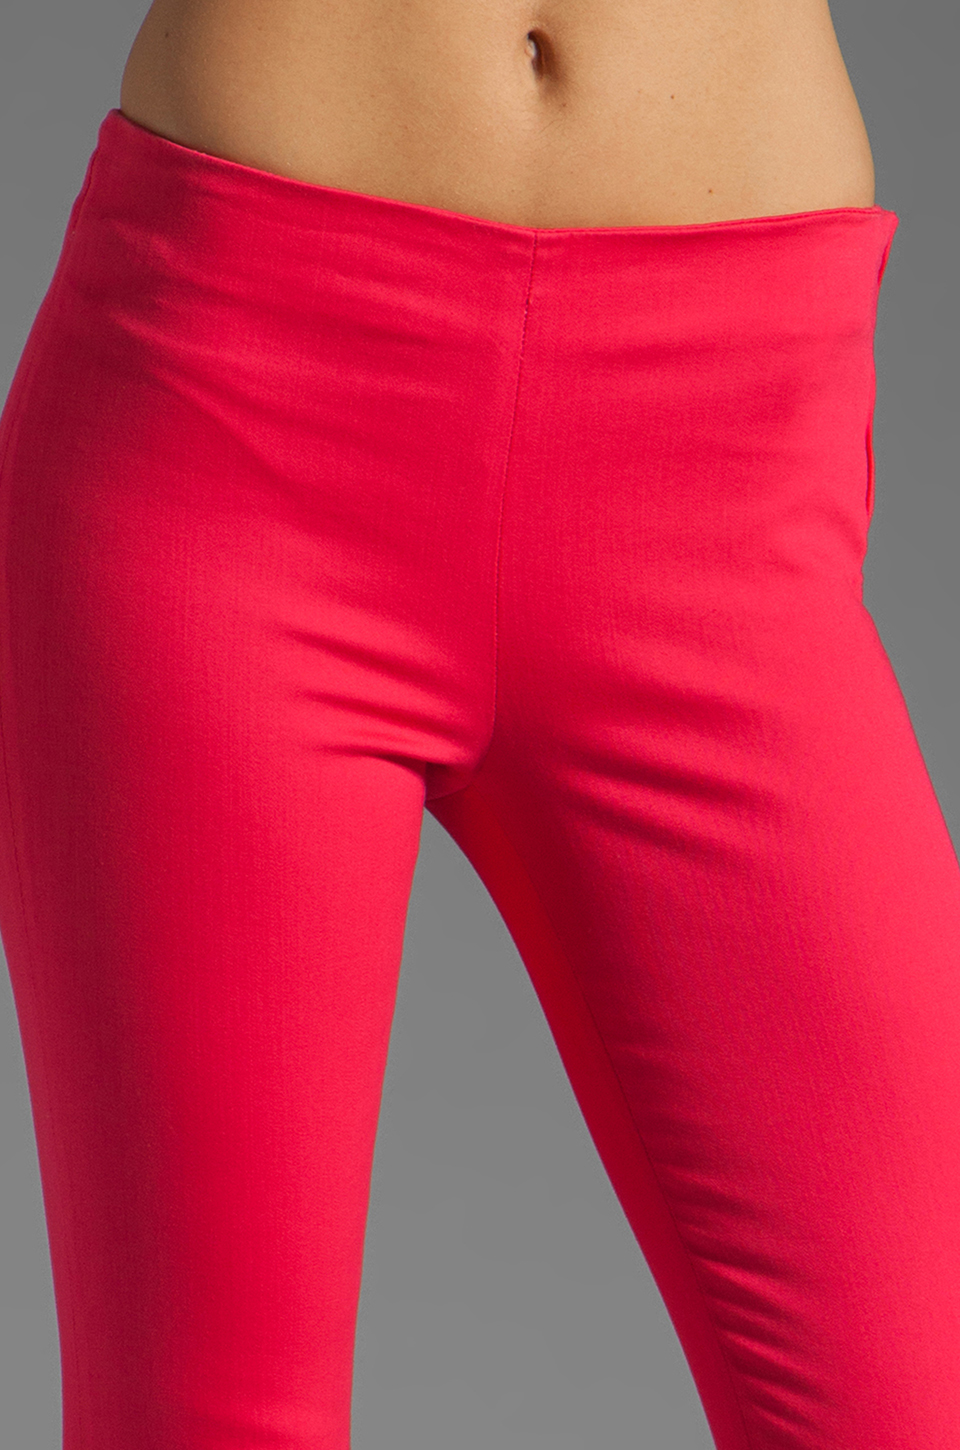 J Brand Clean Capri in Pink Lotus